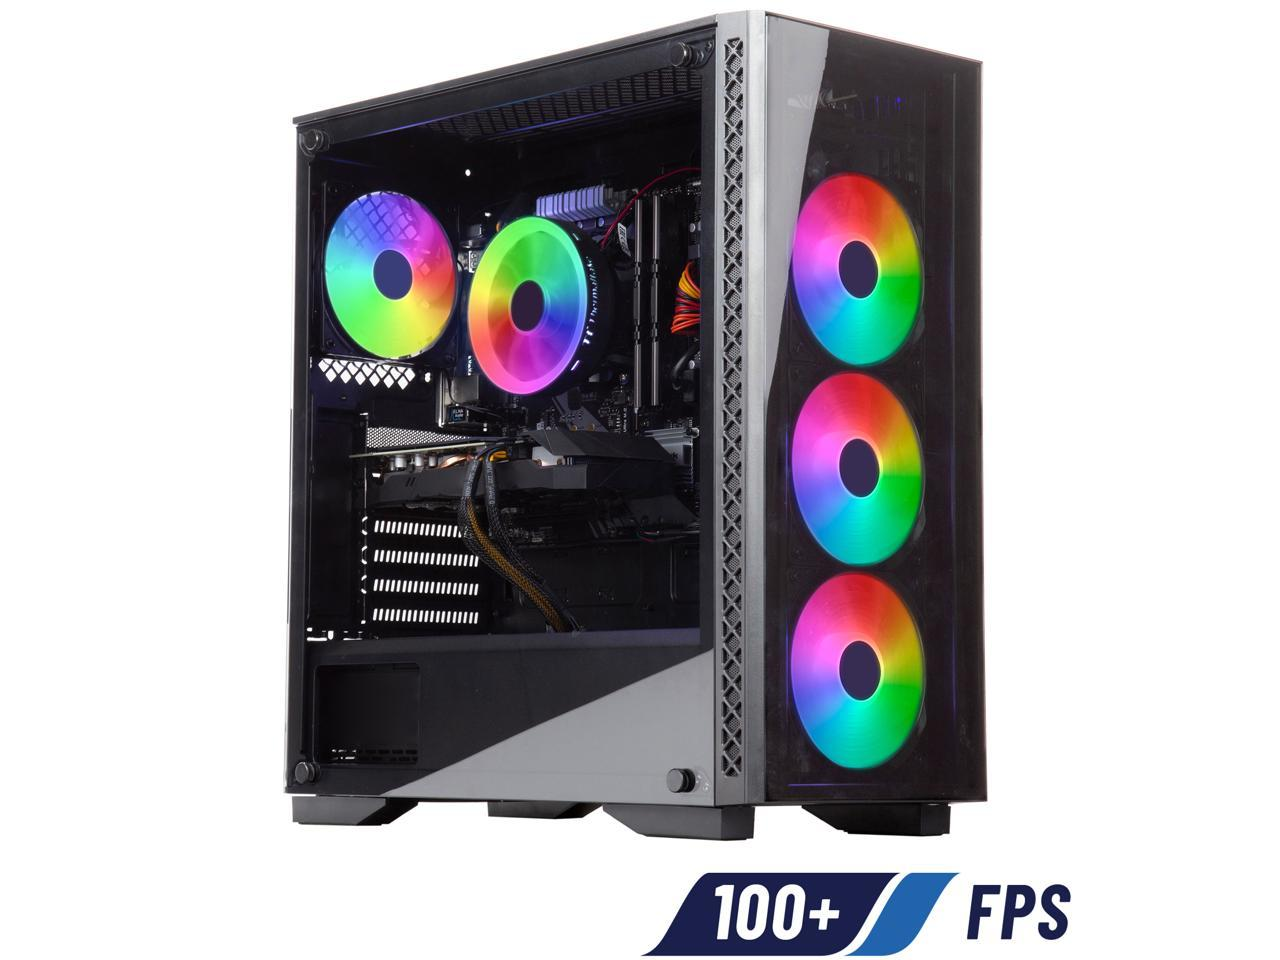 ABS Master Intel i5 10400 GeForce RTX 2060 16GB DDR4 RAM 512GB SSD Gaming Desktop